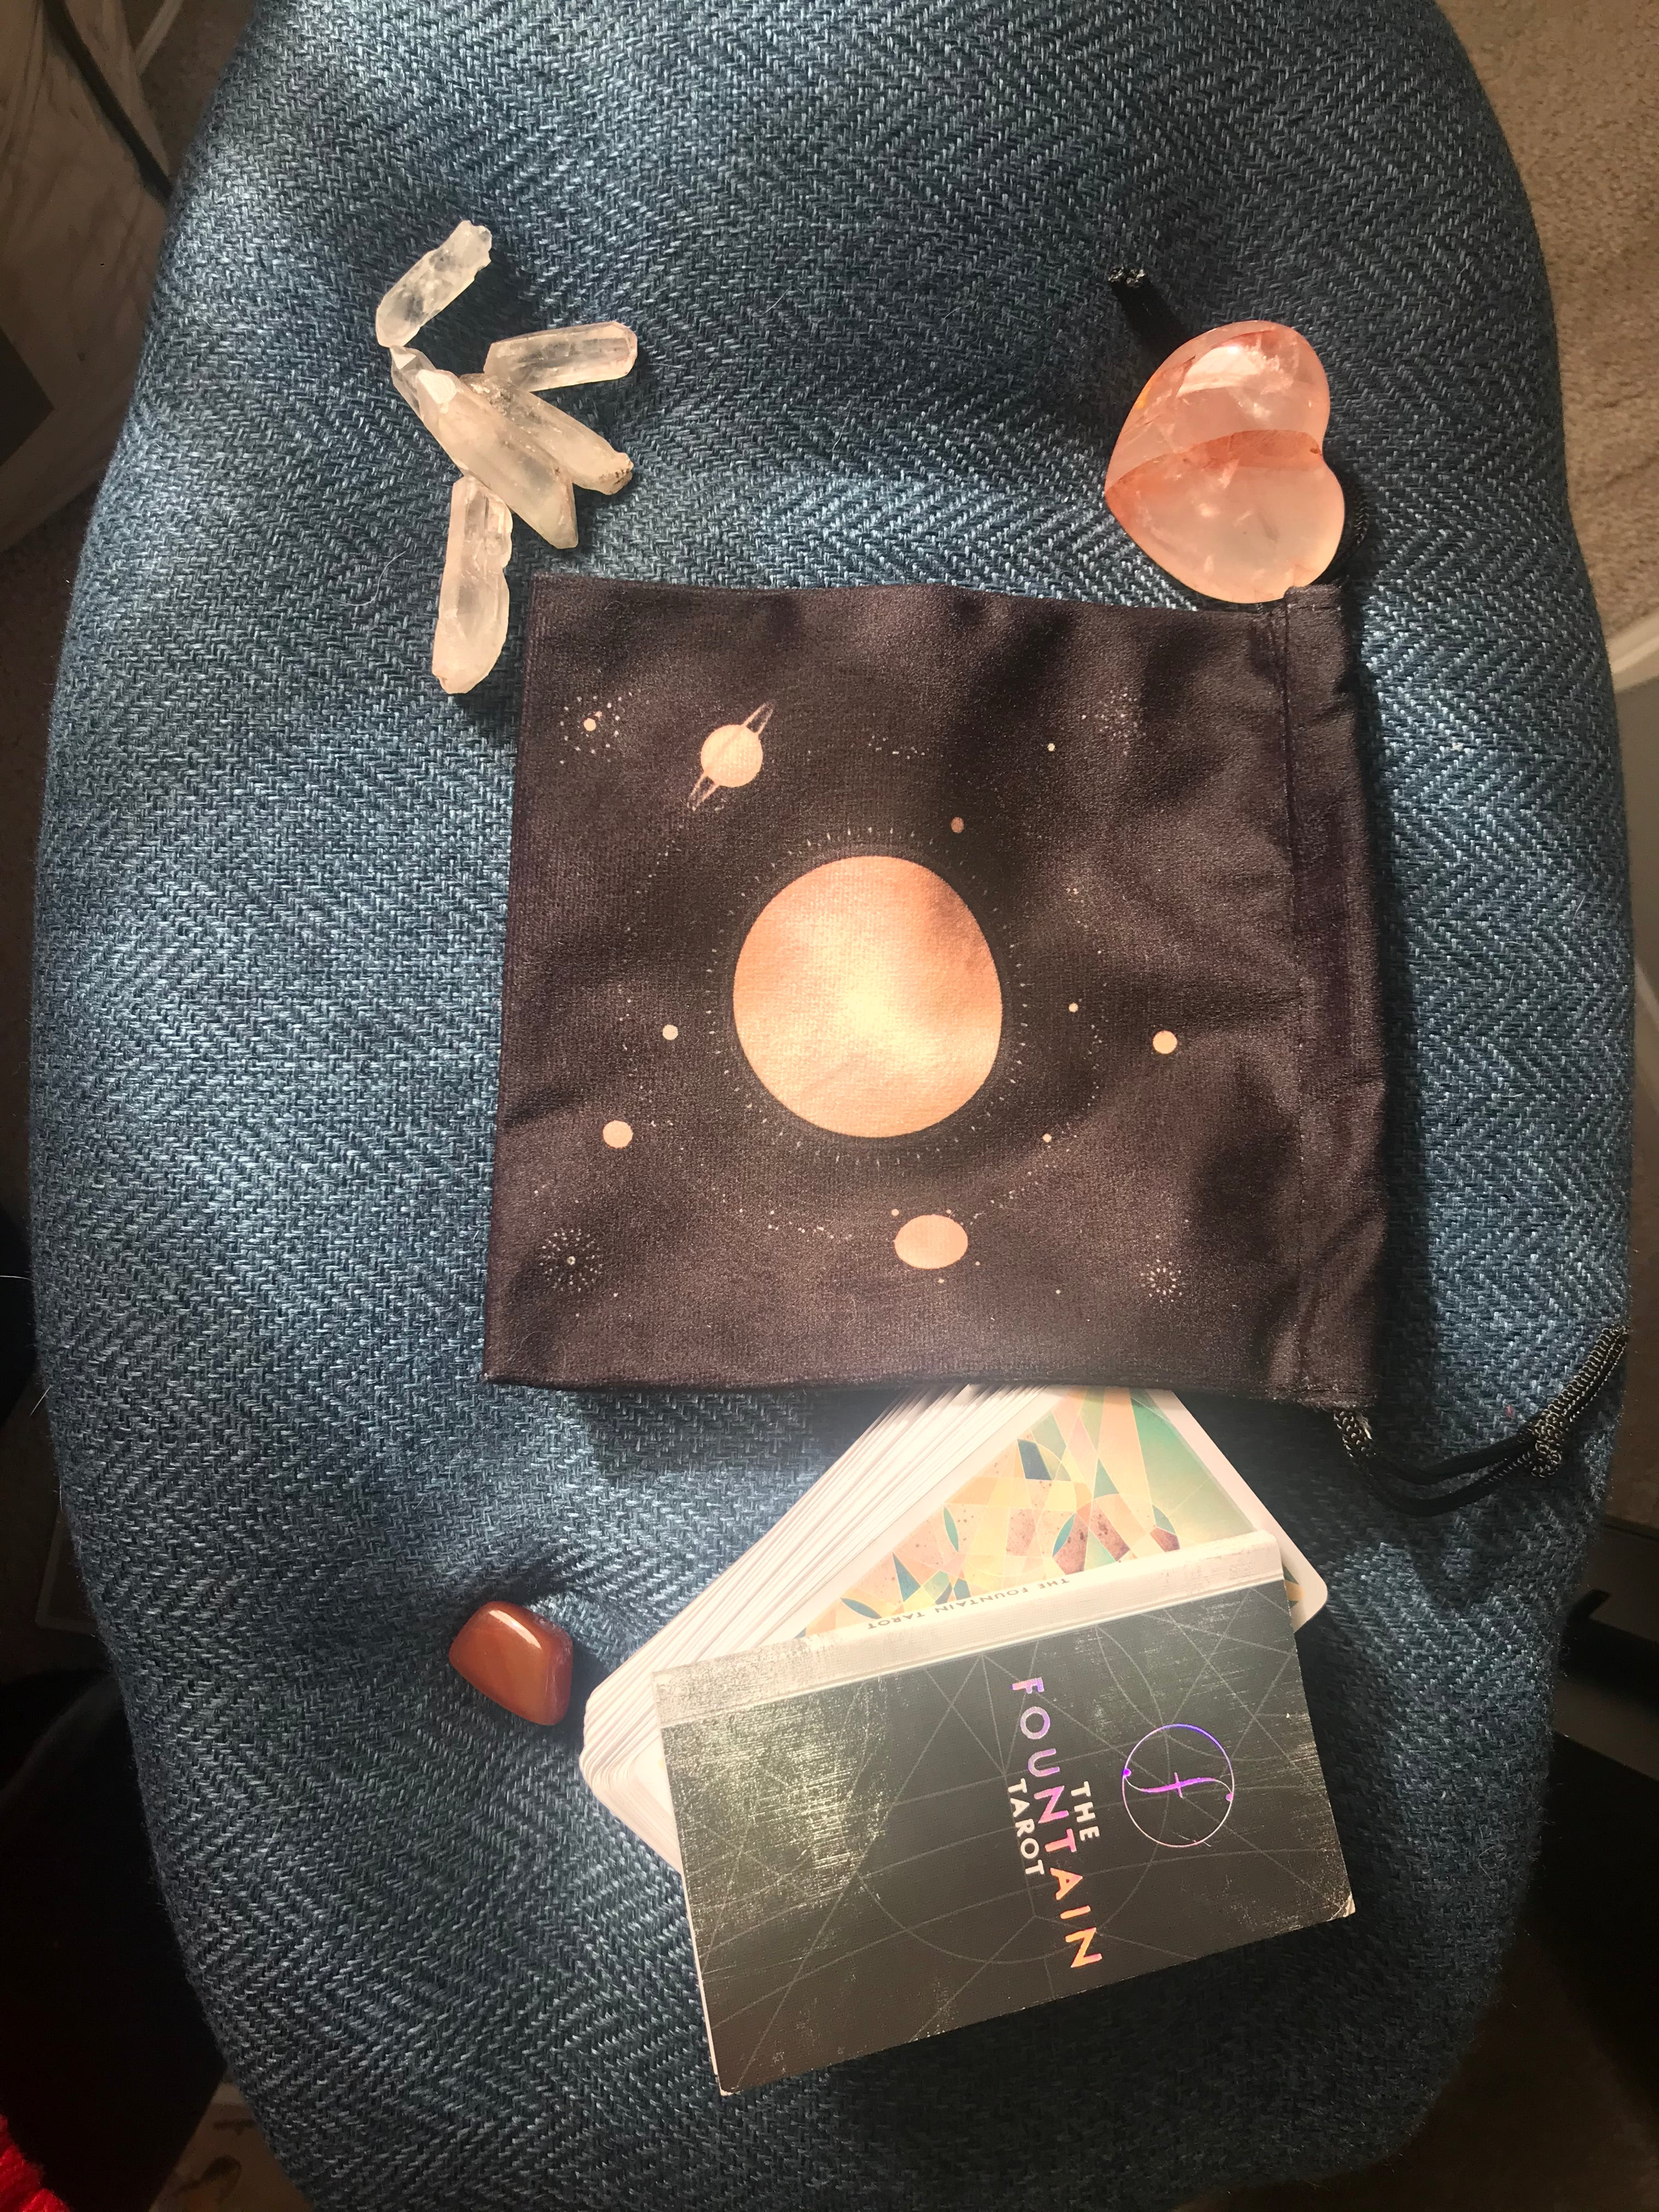 Velvet bag, SMALL: Planets and Solar System, Small 6 inches x 6.5 inches tall, Black Velvet